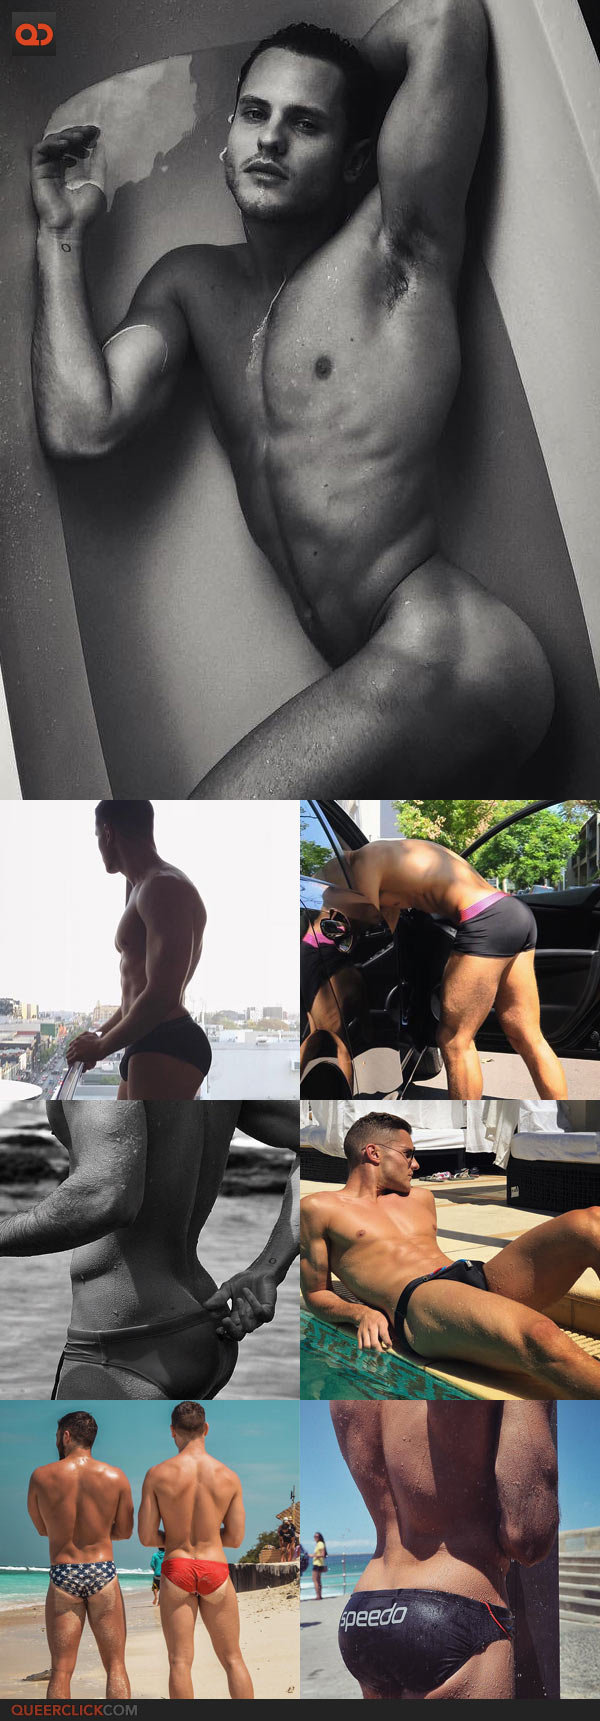 Ten Best Muscle Butts From Instagram You Need To Follow Right Now!